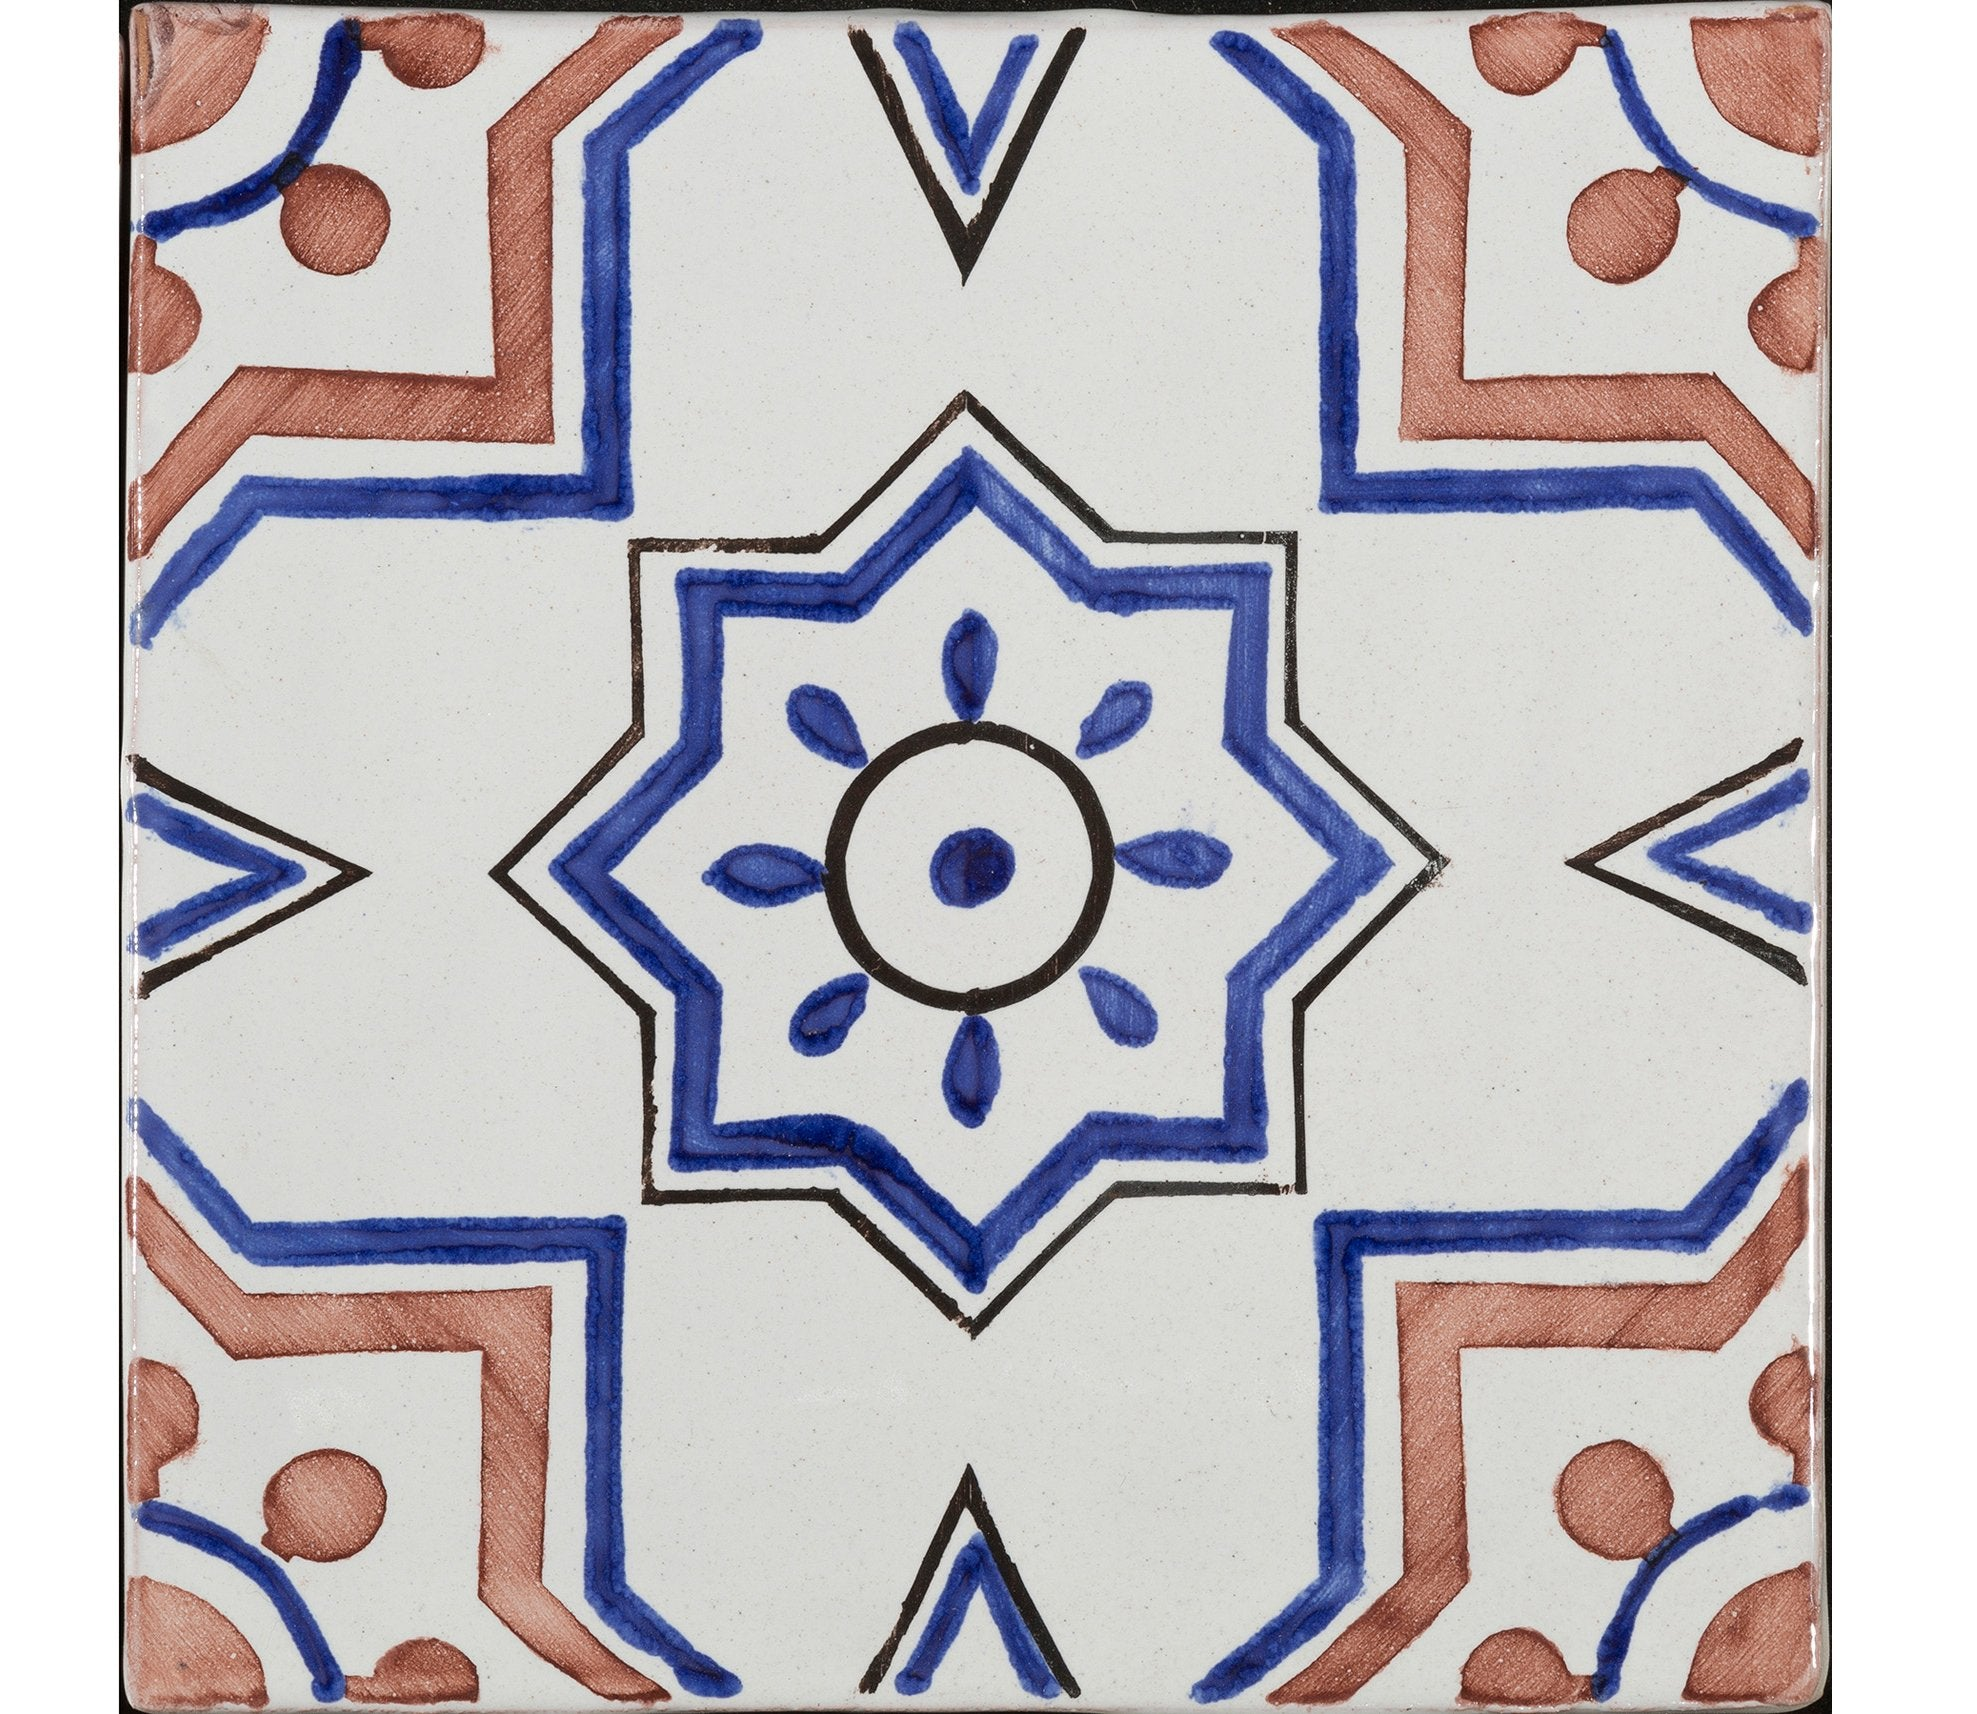 Series S Handpainted Tiles Product Image 37